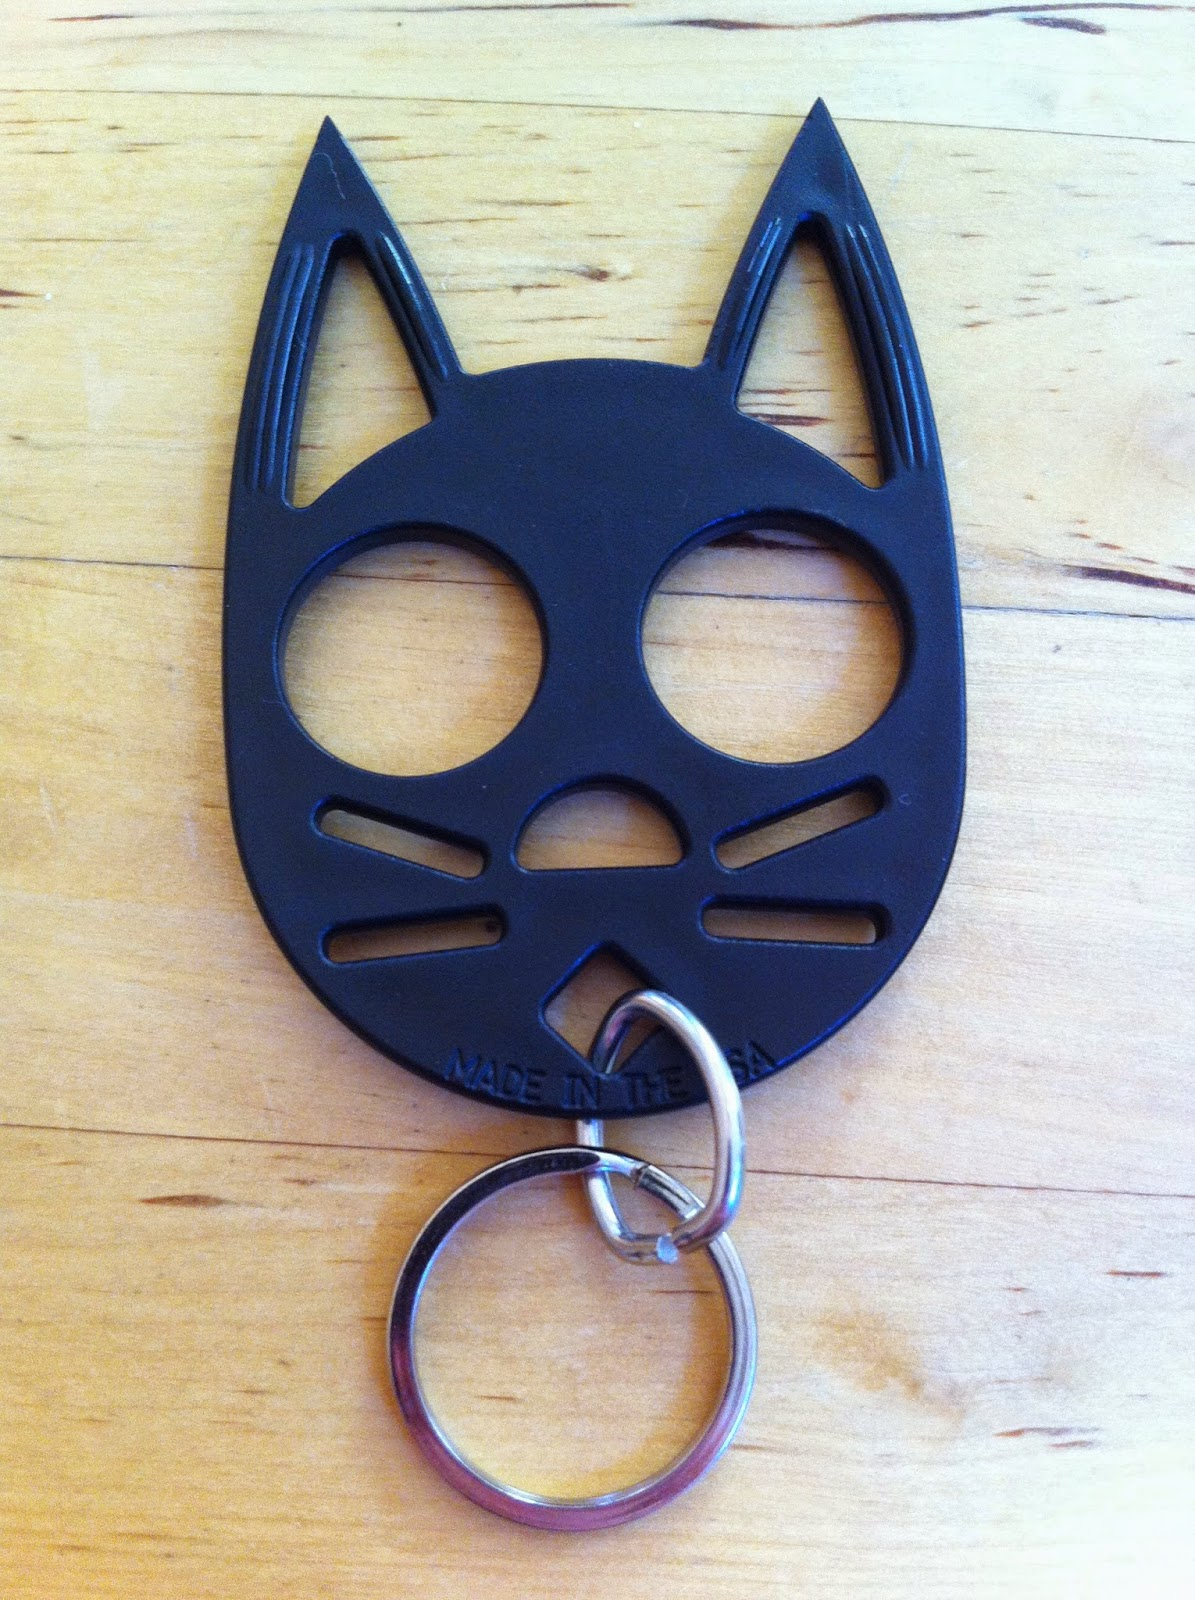 Forgotten Trinkets Reviews The Cat Self Defense Keychain